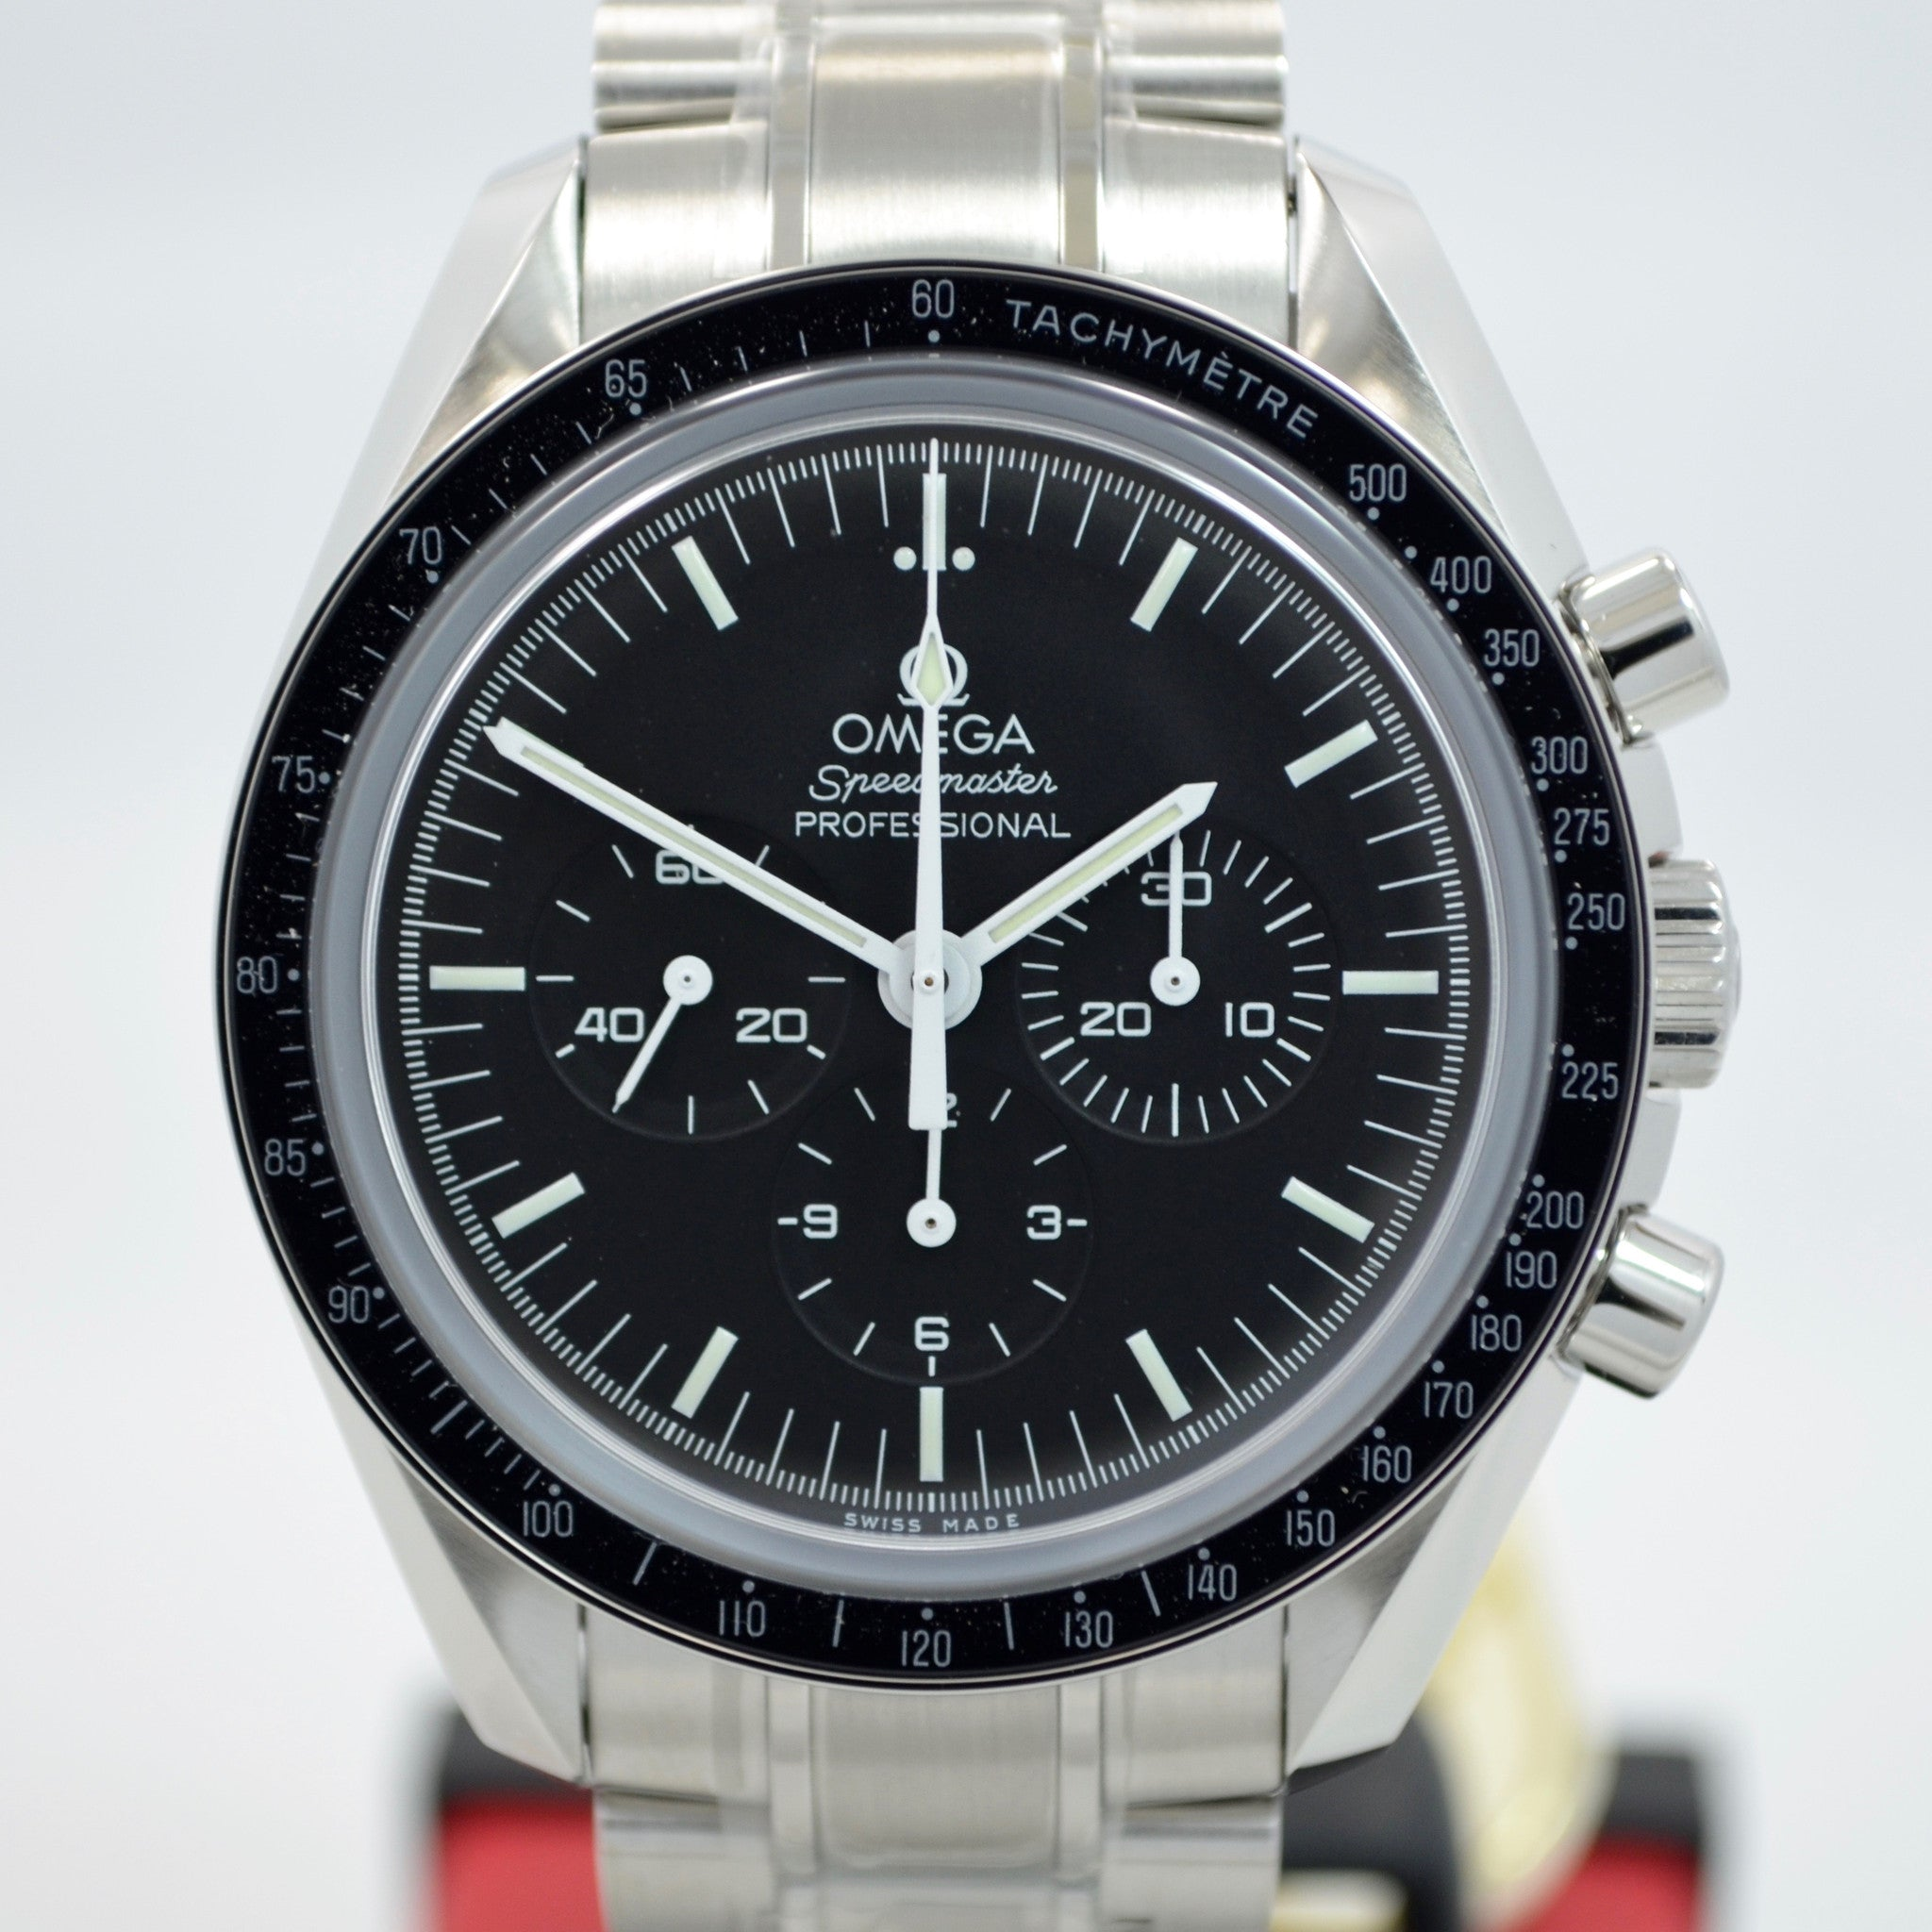 OMEGA SPEEDMASTER MOONWATCH PROFESSIONAL CHRONOGRAPH 311.30.42.30.01.005 WATCH - Hashtag Watch Company